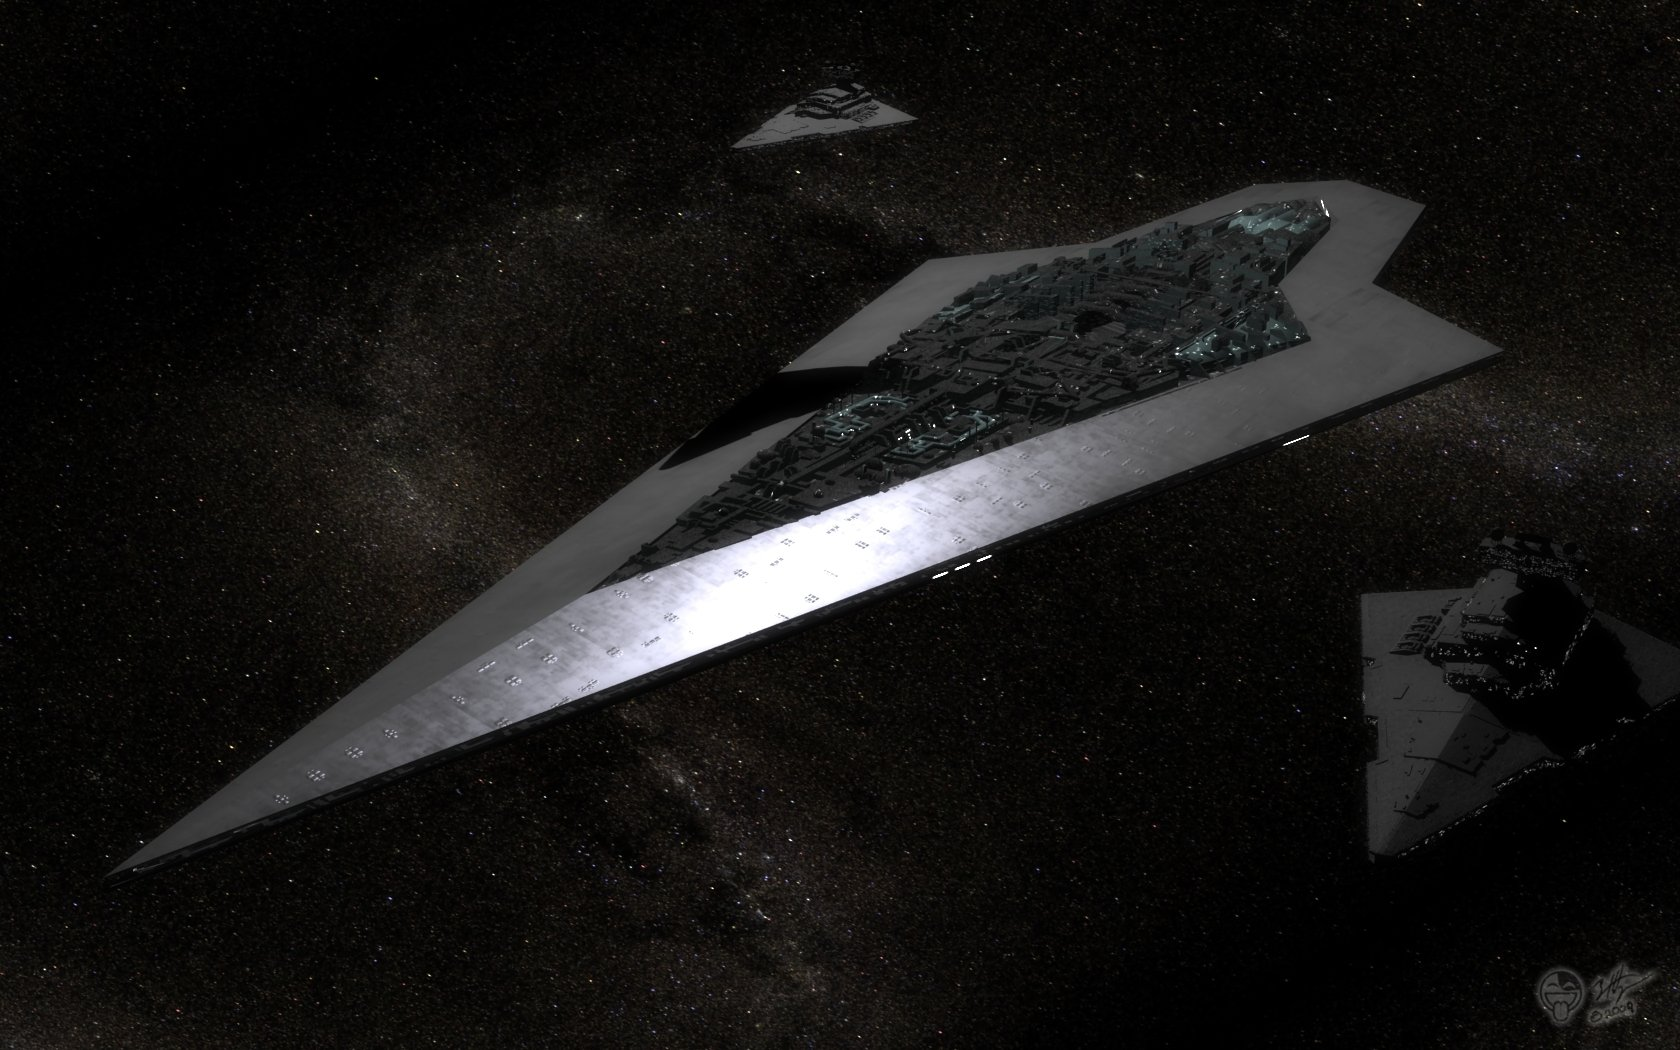 Sci Fi - Star Wars  Super Star Destroyer Executor Wallpaper